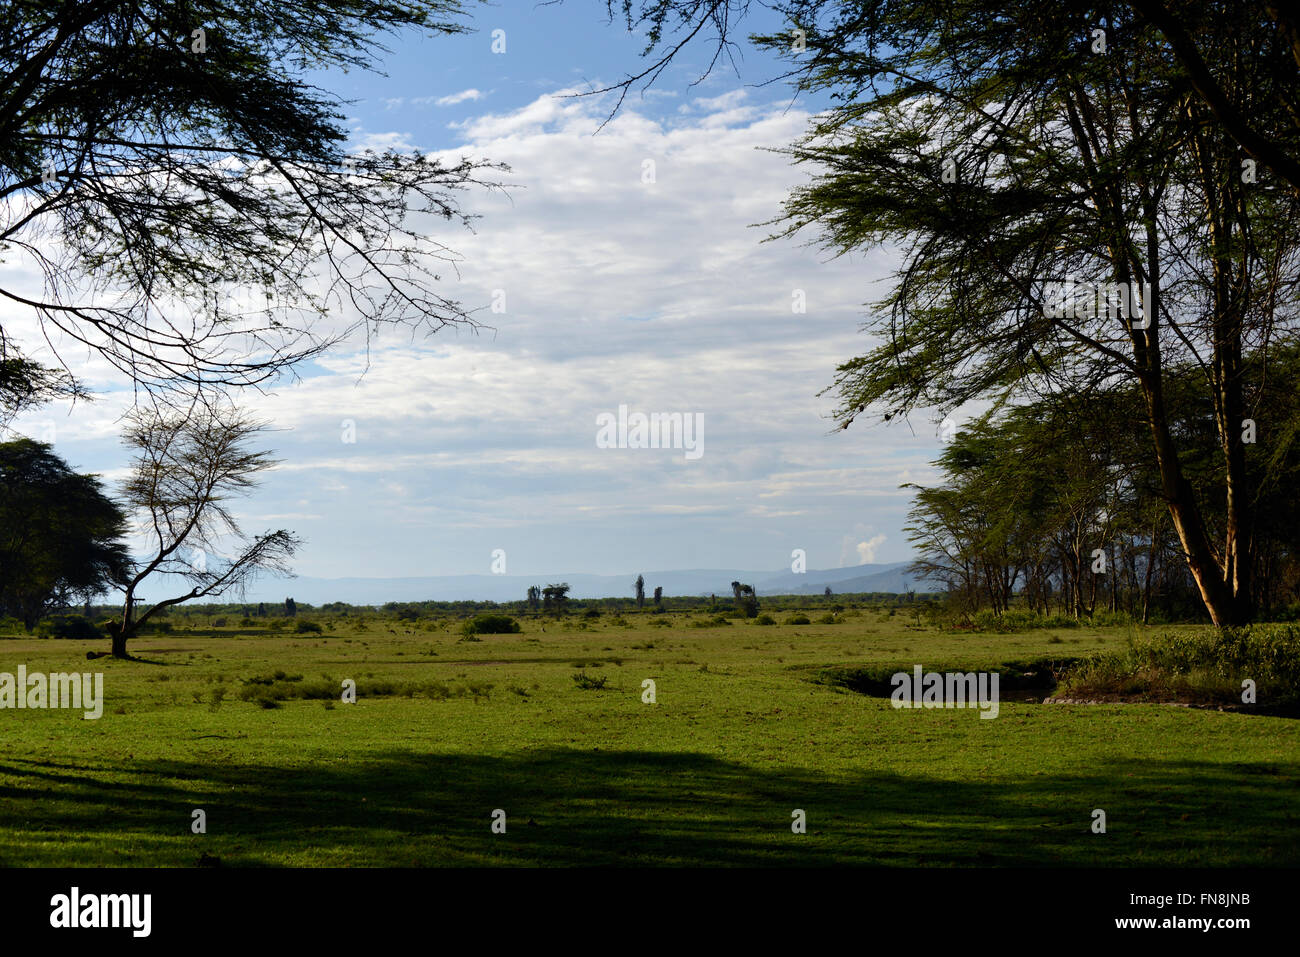 AFRICA: KENYA: Shores of Lake NAIVASHA in the East African Rift Valley with Strato Volcano LONGONOT smoking steam - Stock Image